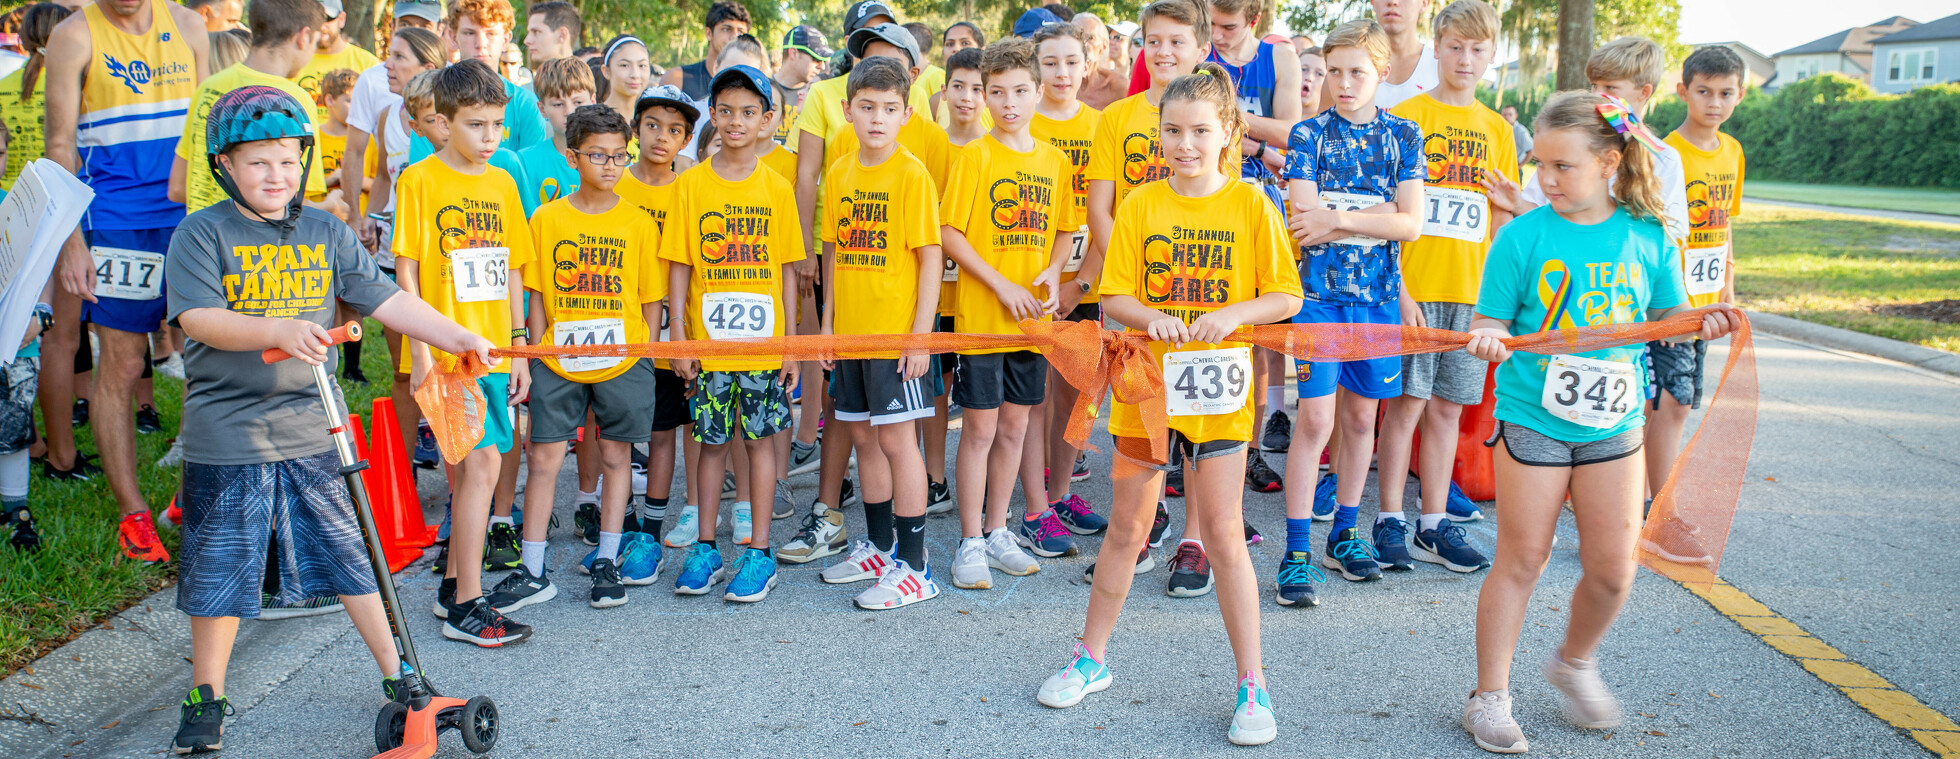 9th Annual Cheval Cares Family Fun Run (Virtual)